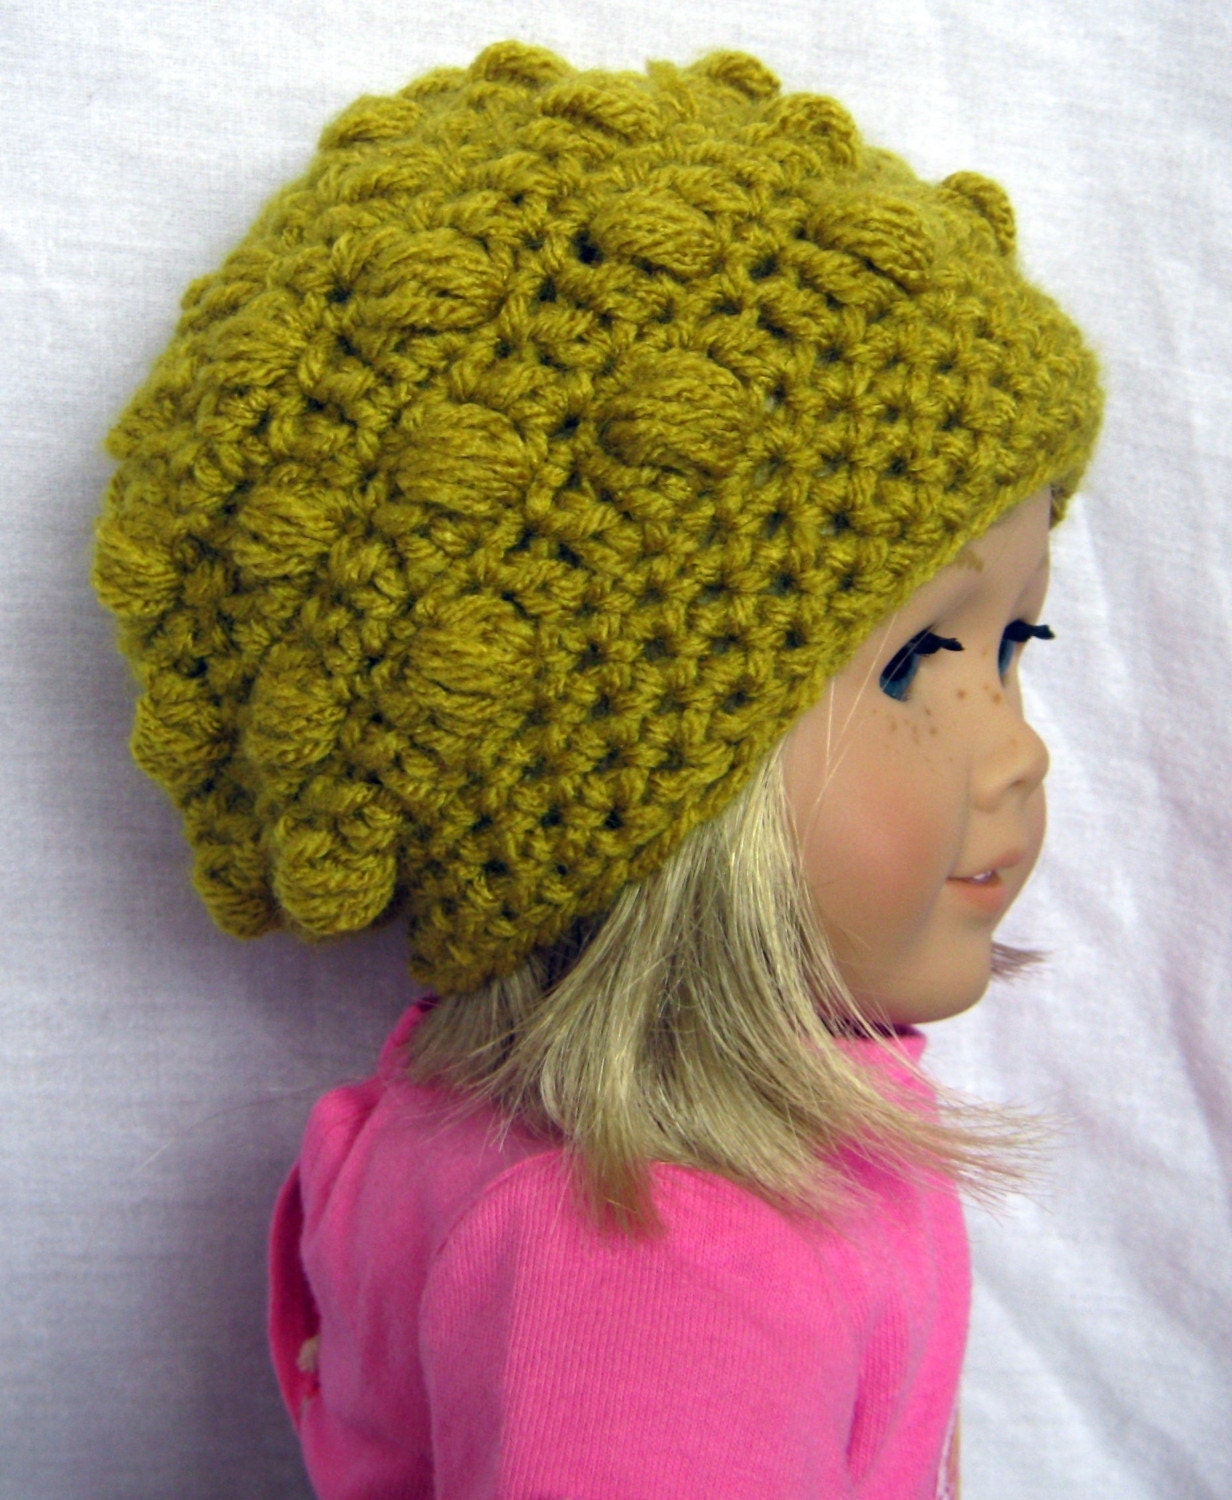 Crochet Hat Pattern American Girl Doll : PDF PATTERN Crochet Hat for American Girl dolls or by ...